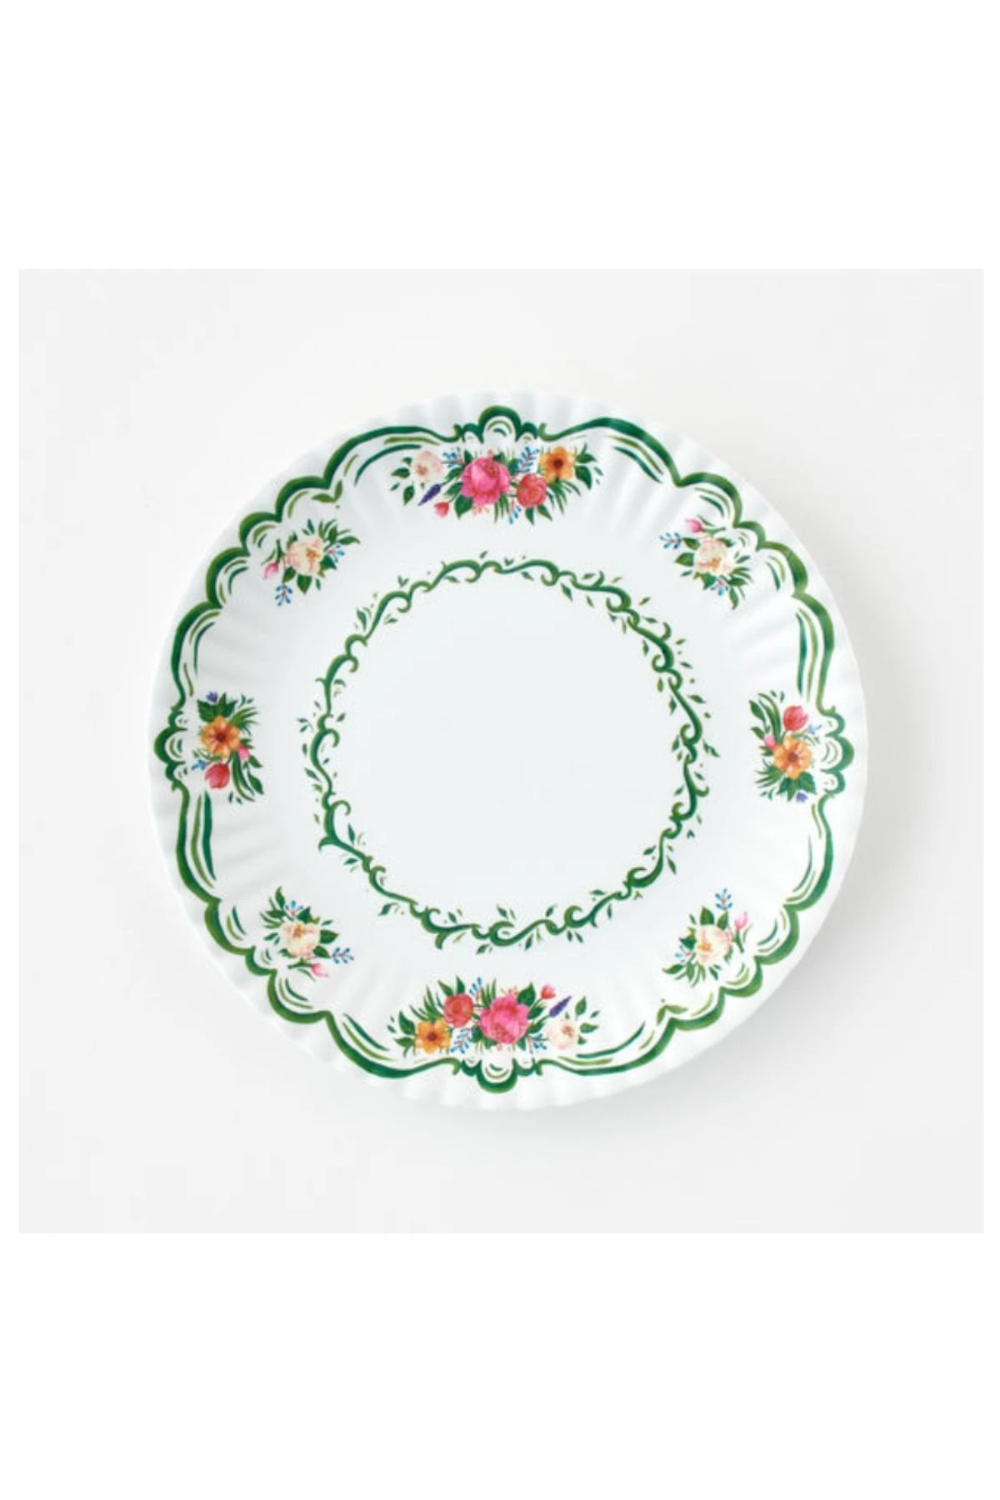 Garden Melamine Paper Plate Melamine Plate Dishwasher Safe 11 Inch Diameter Sold Individually Expected Ship 1 27 21 In 2021 Paper Plates Plates Melamine